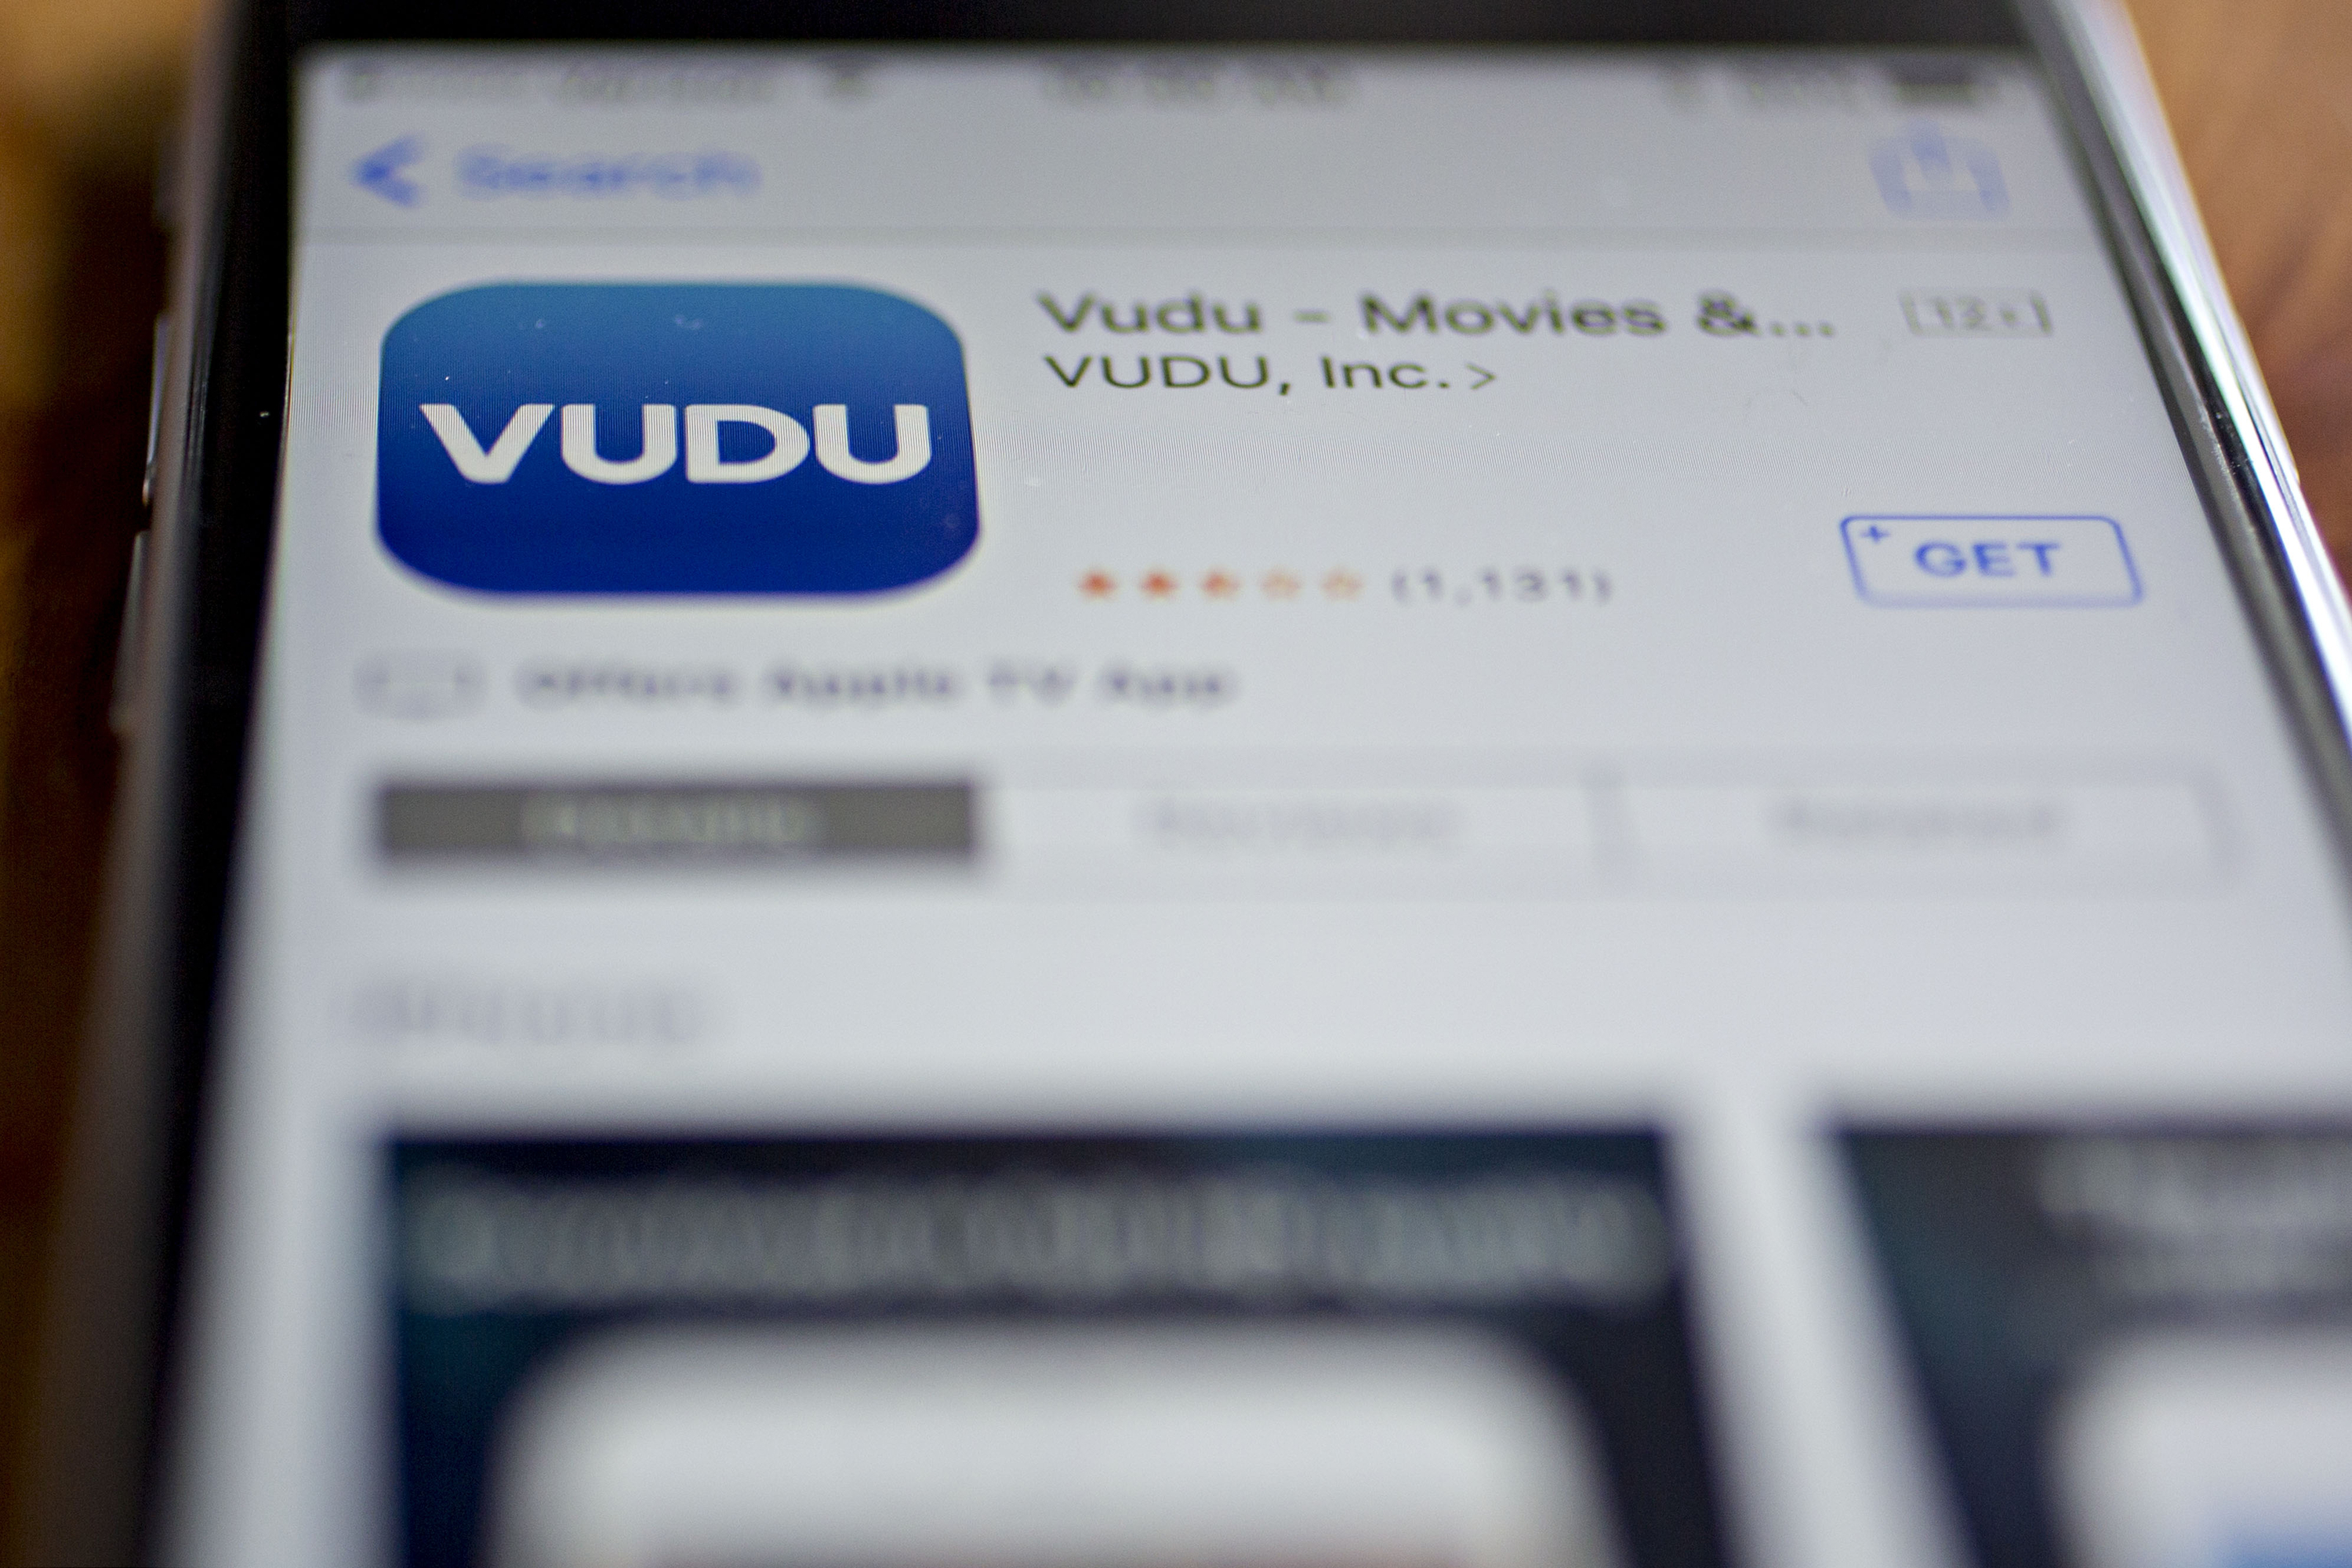 At the NewFronts, Walmart unveils a Vudu video ad network to reach more shoppers